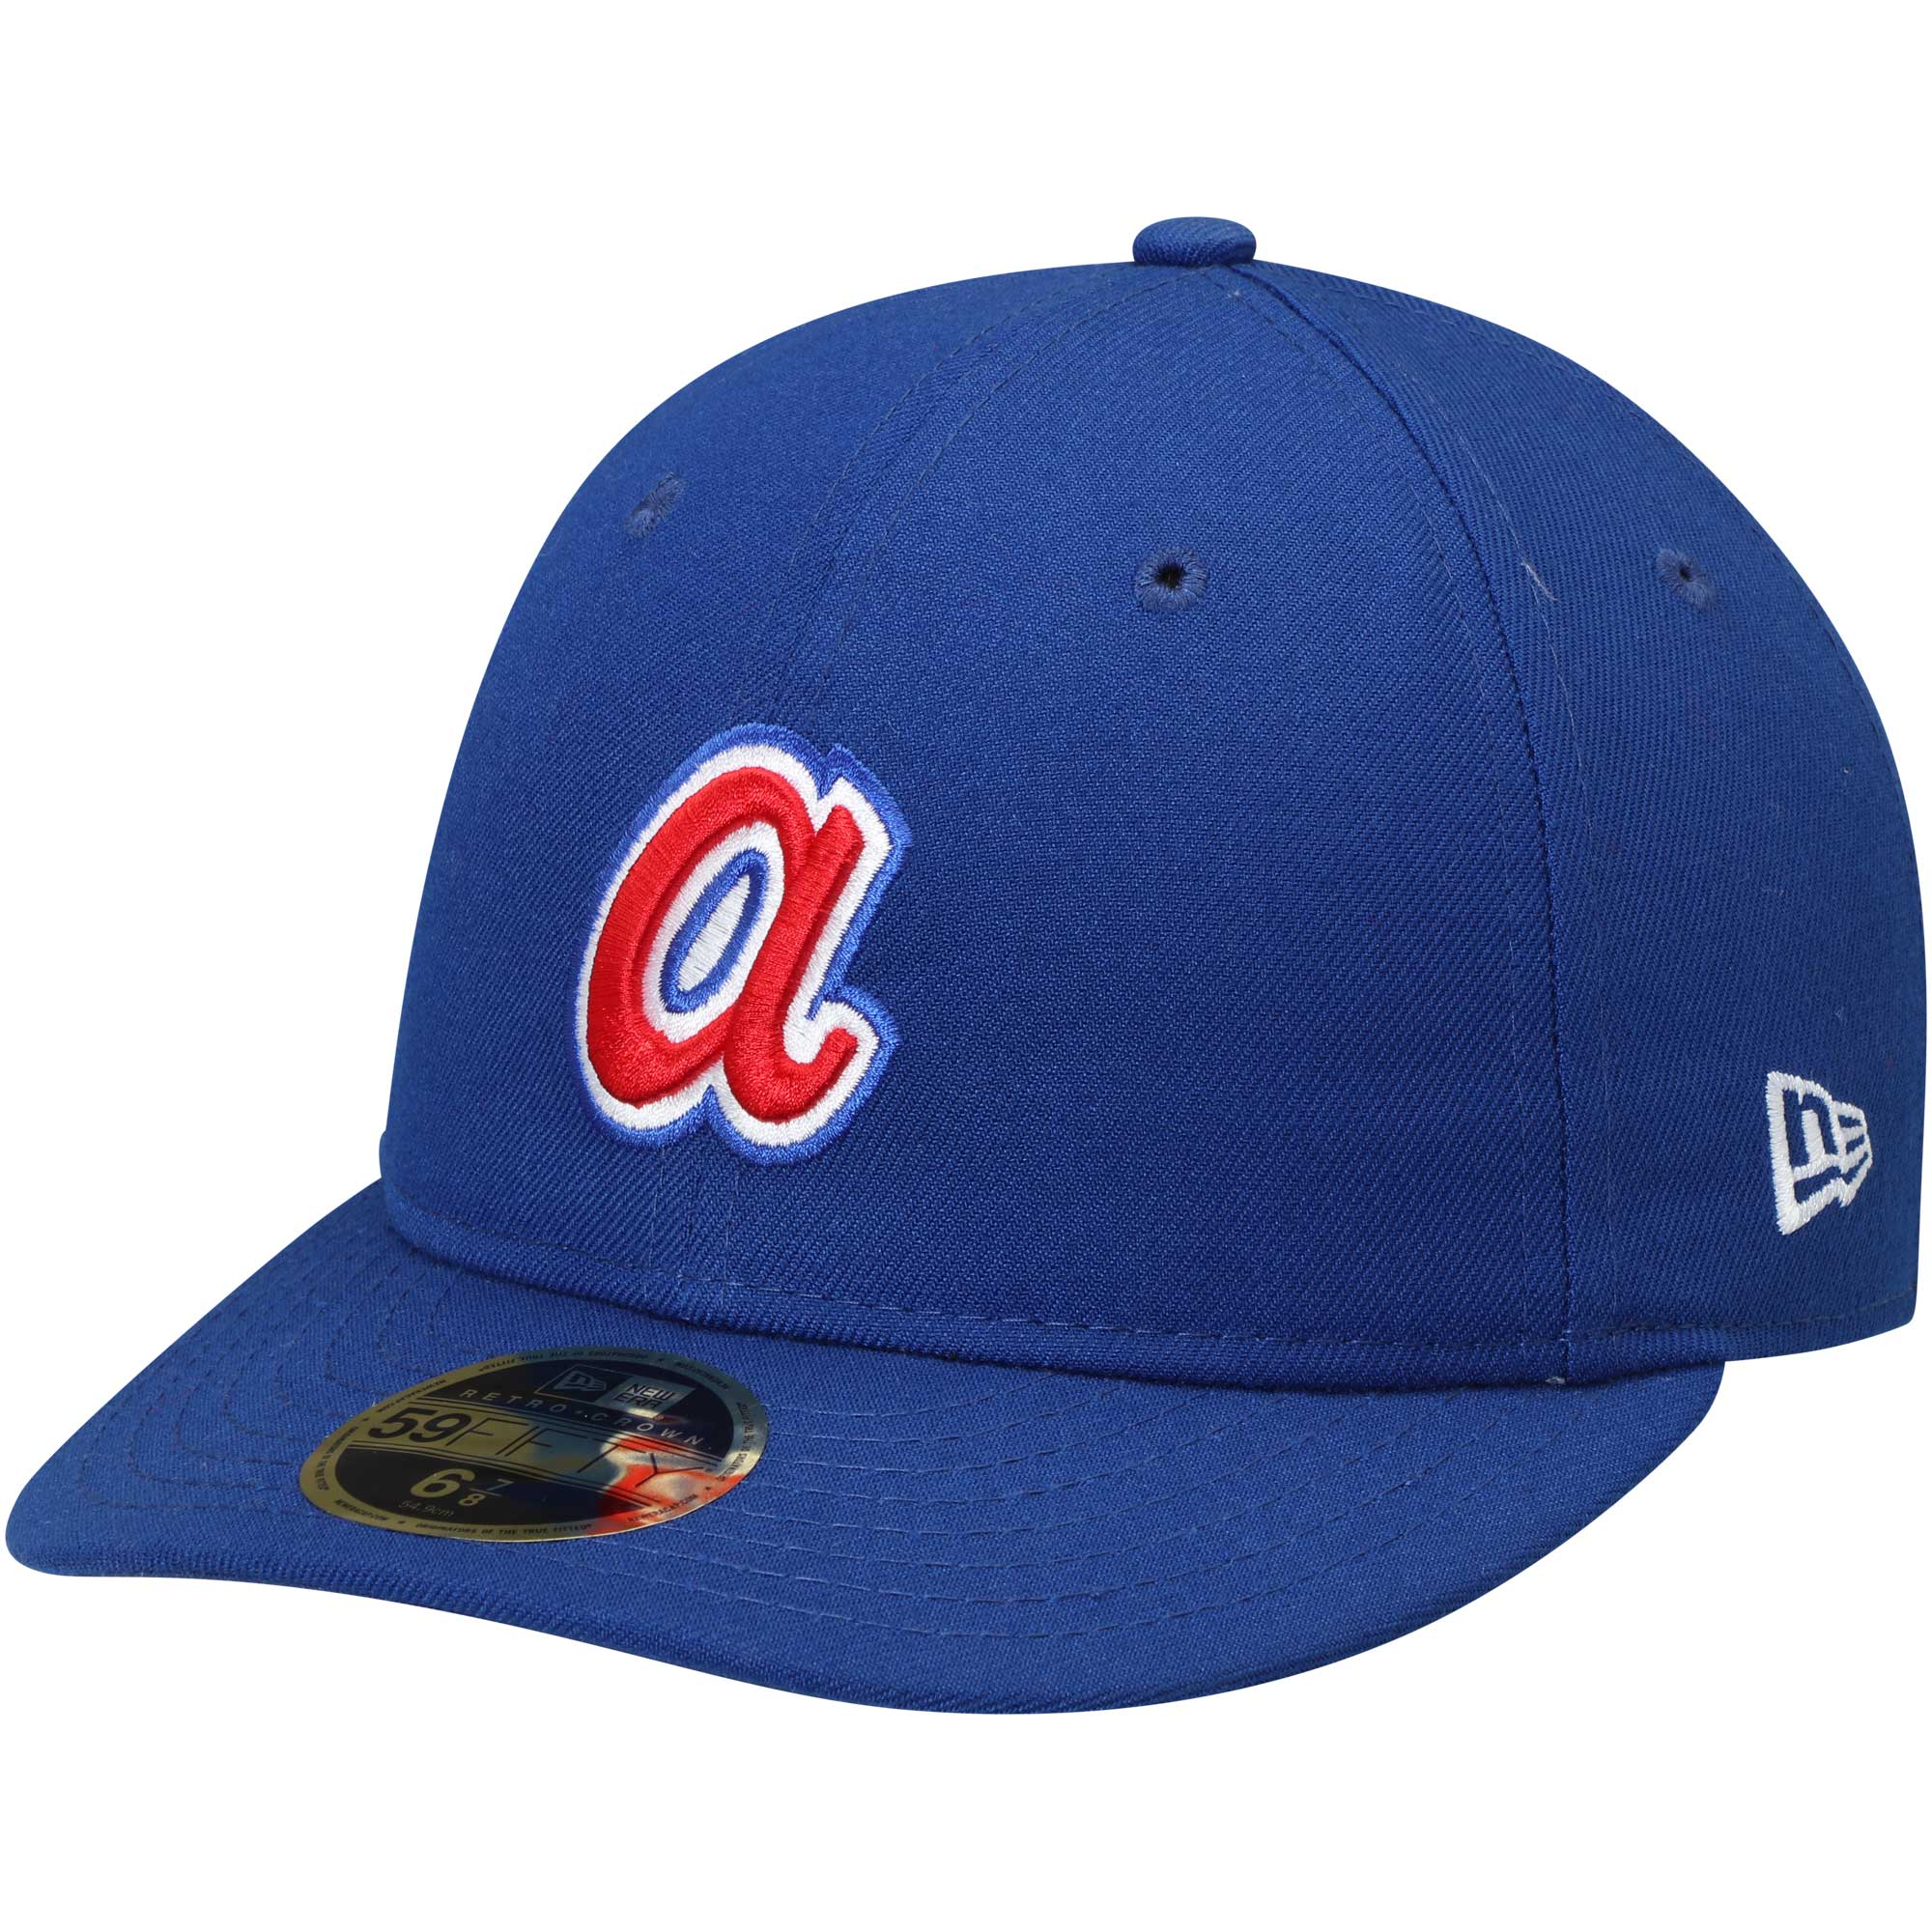 buy popular 1b558 b9275 Atlanta Braves New Era Cooperstown Collection Fan Retro 59FIFTY Fitted Hat  - Royal - Walmart.com